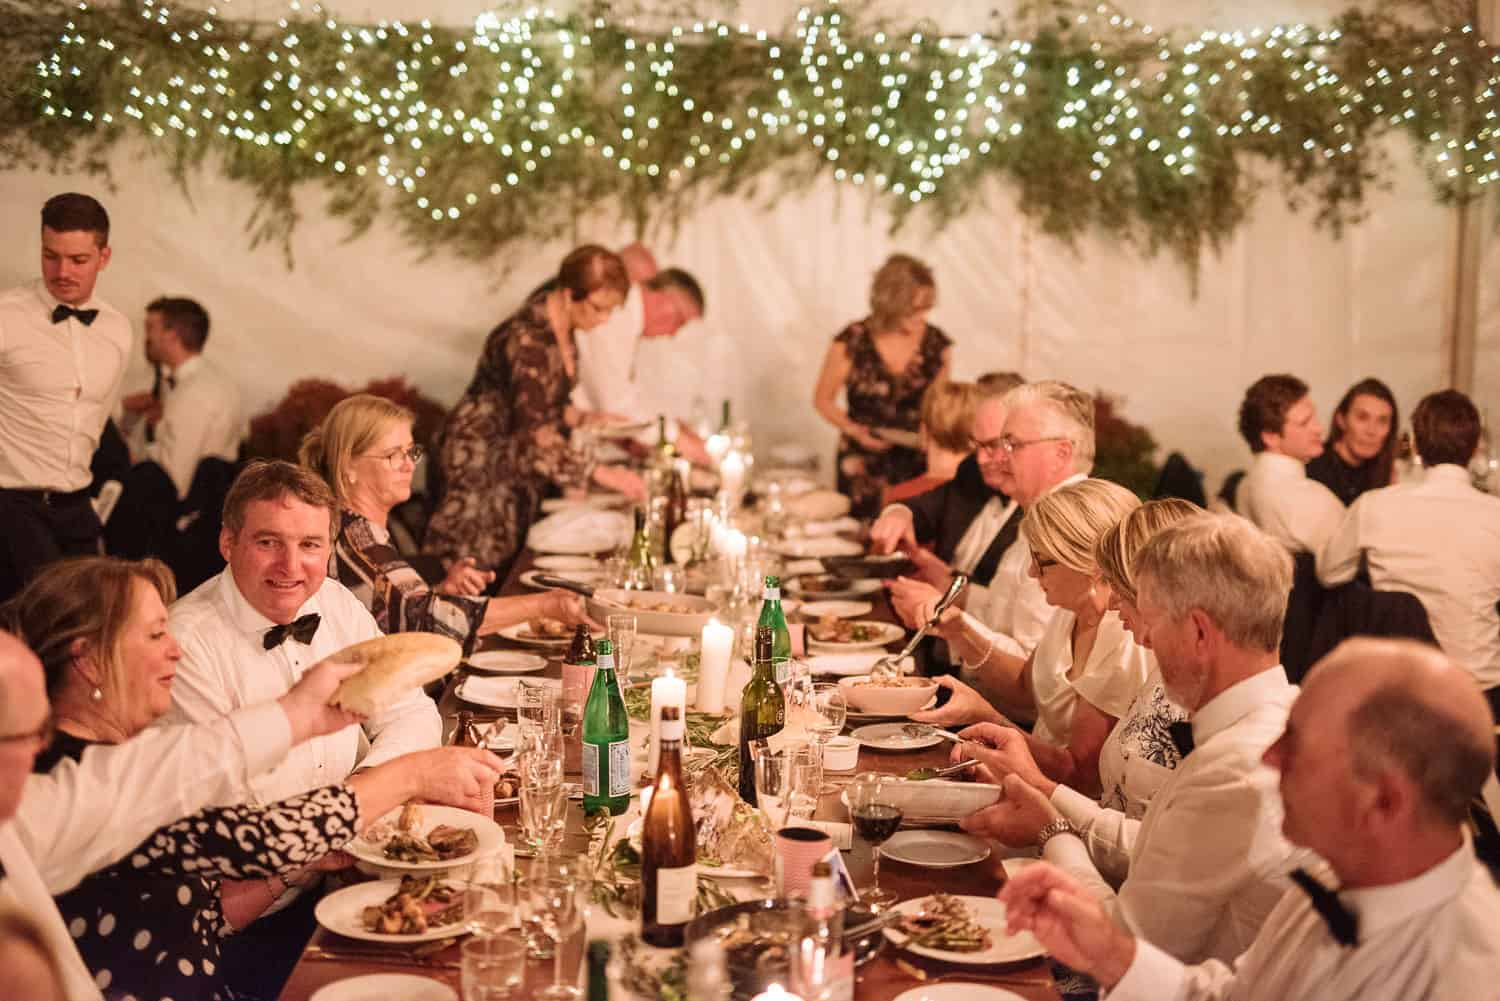 Wedding guests enjoy a delicious meal